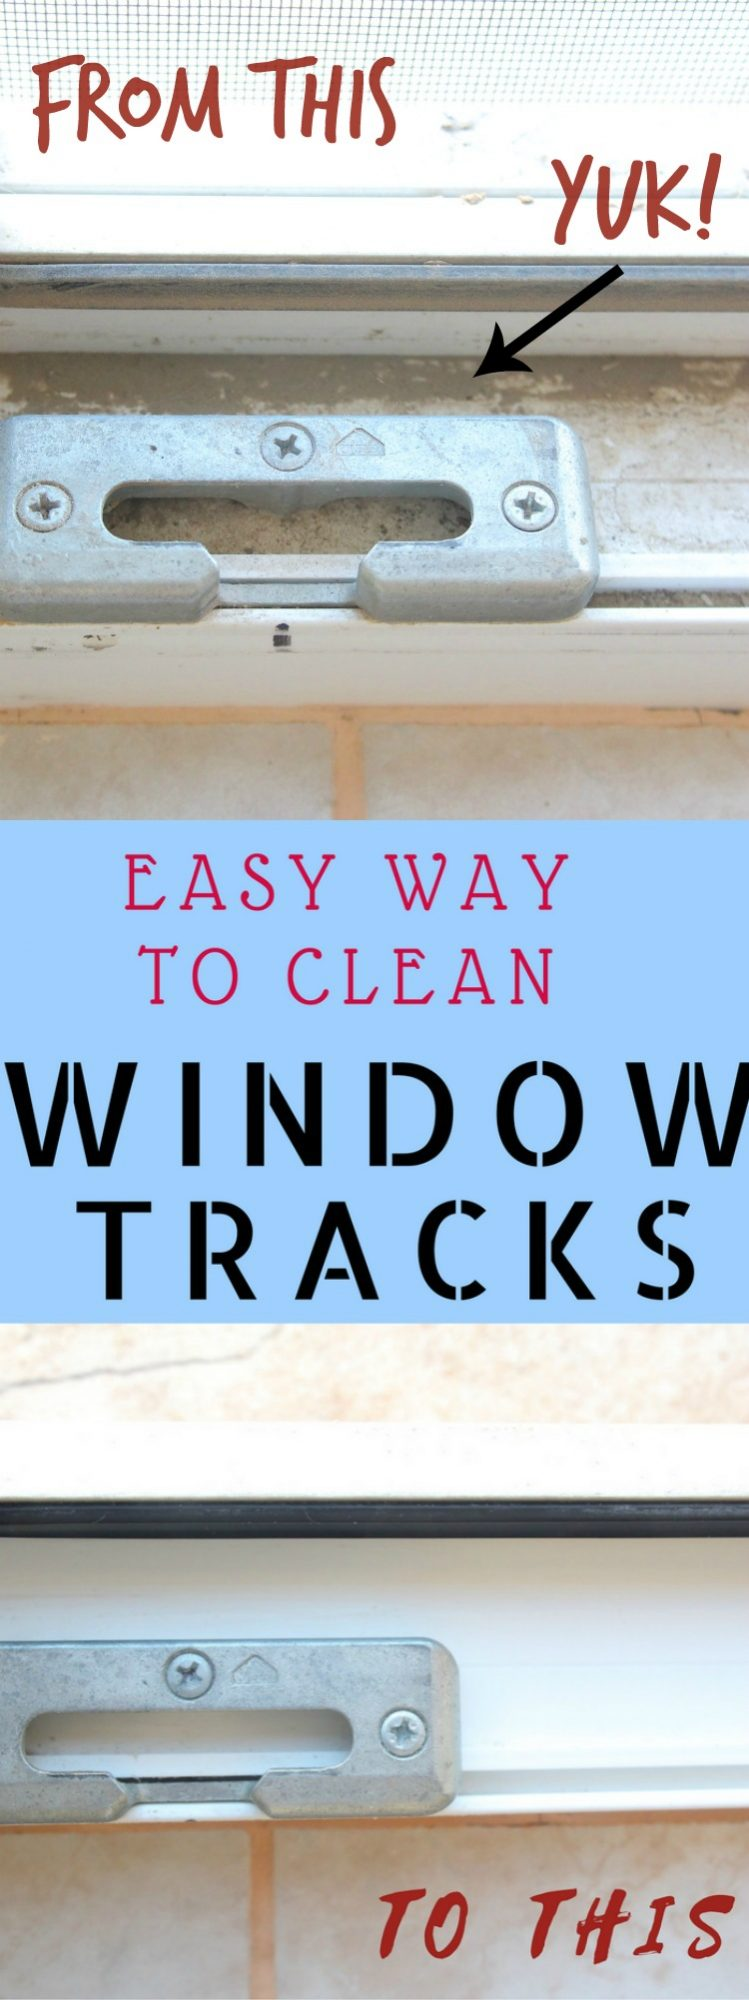 Best way to clean window tracks